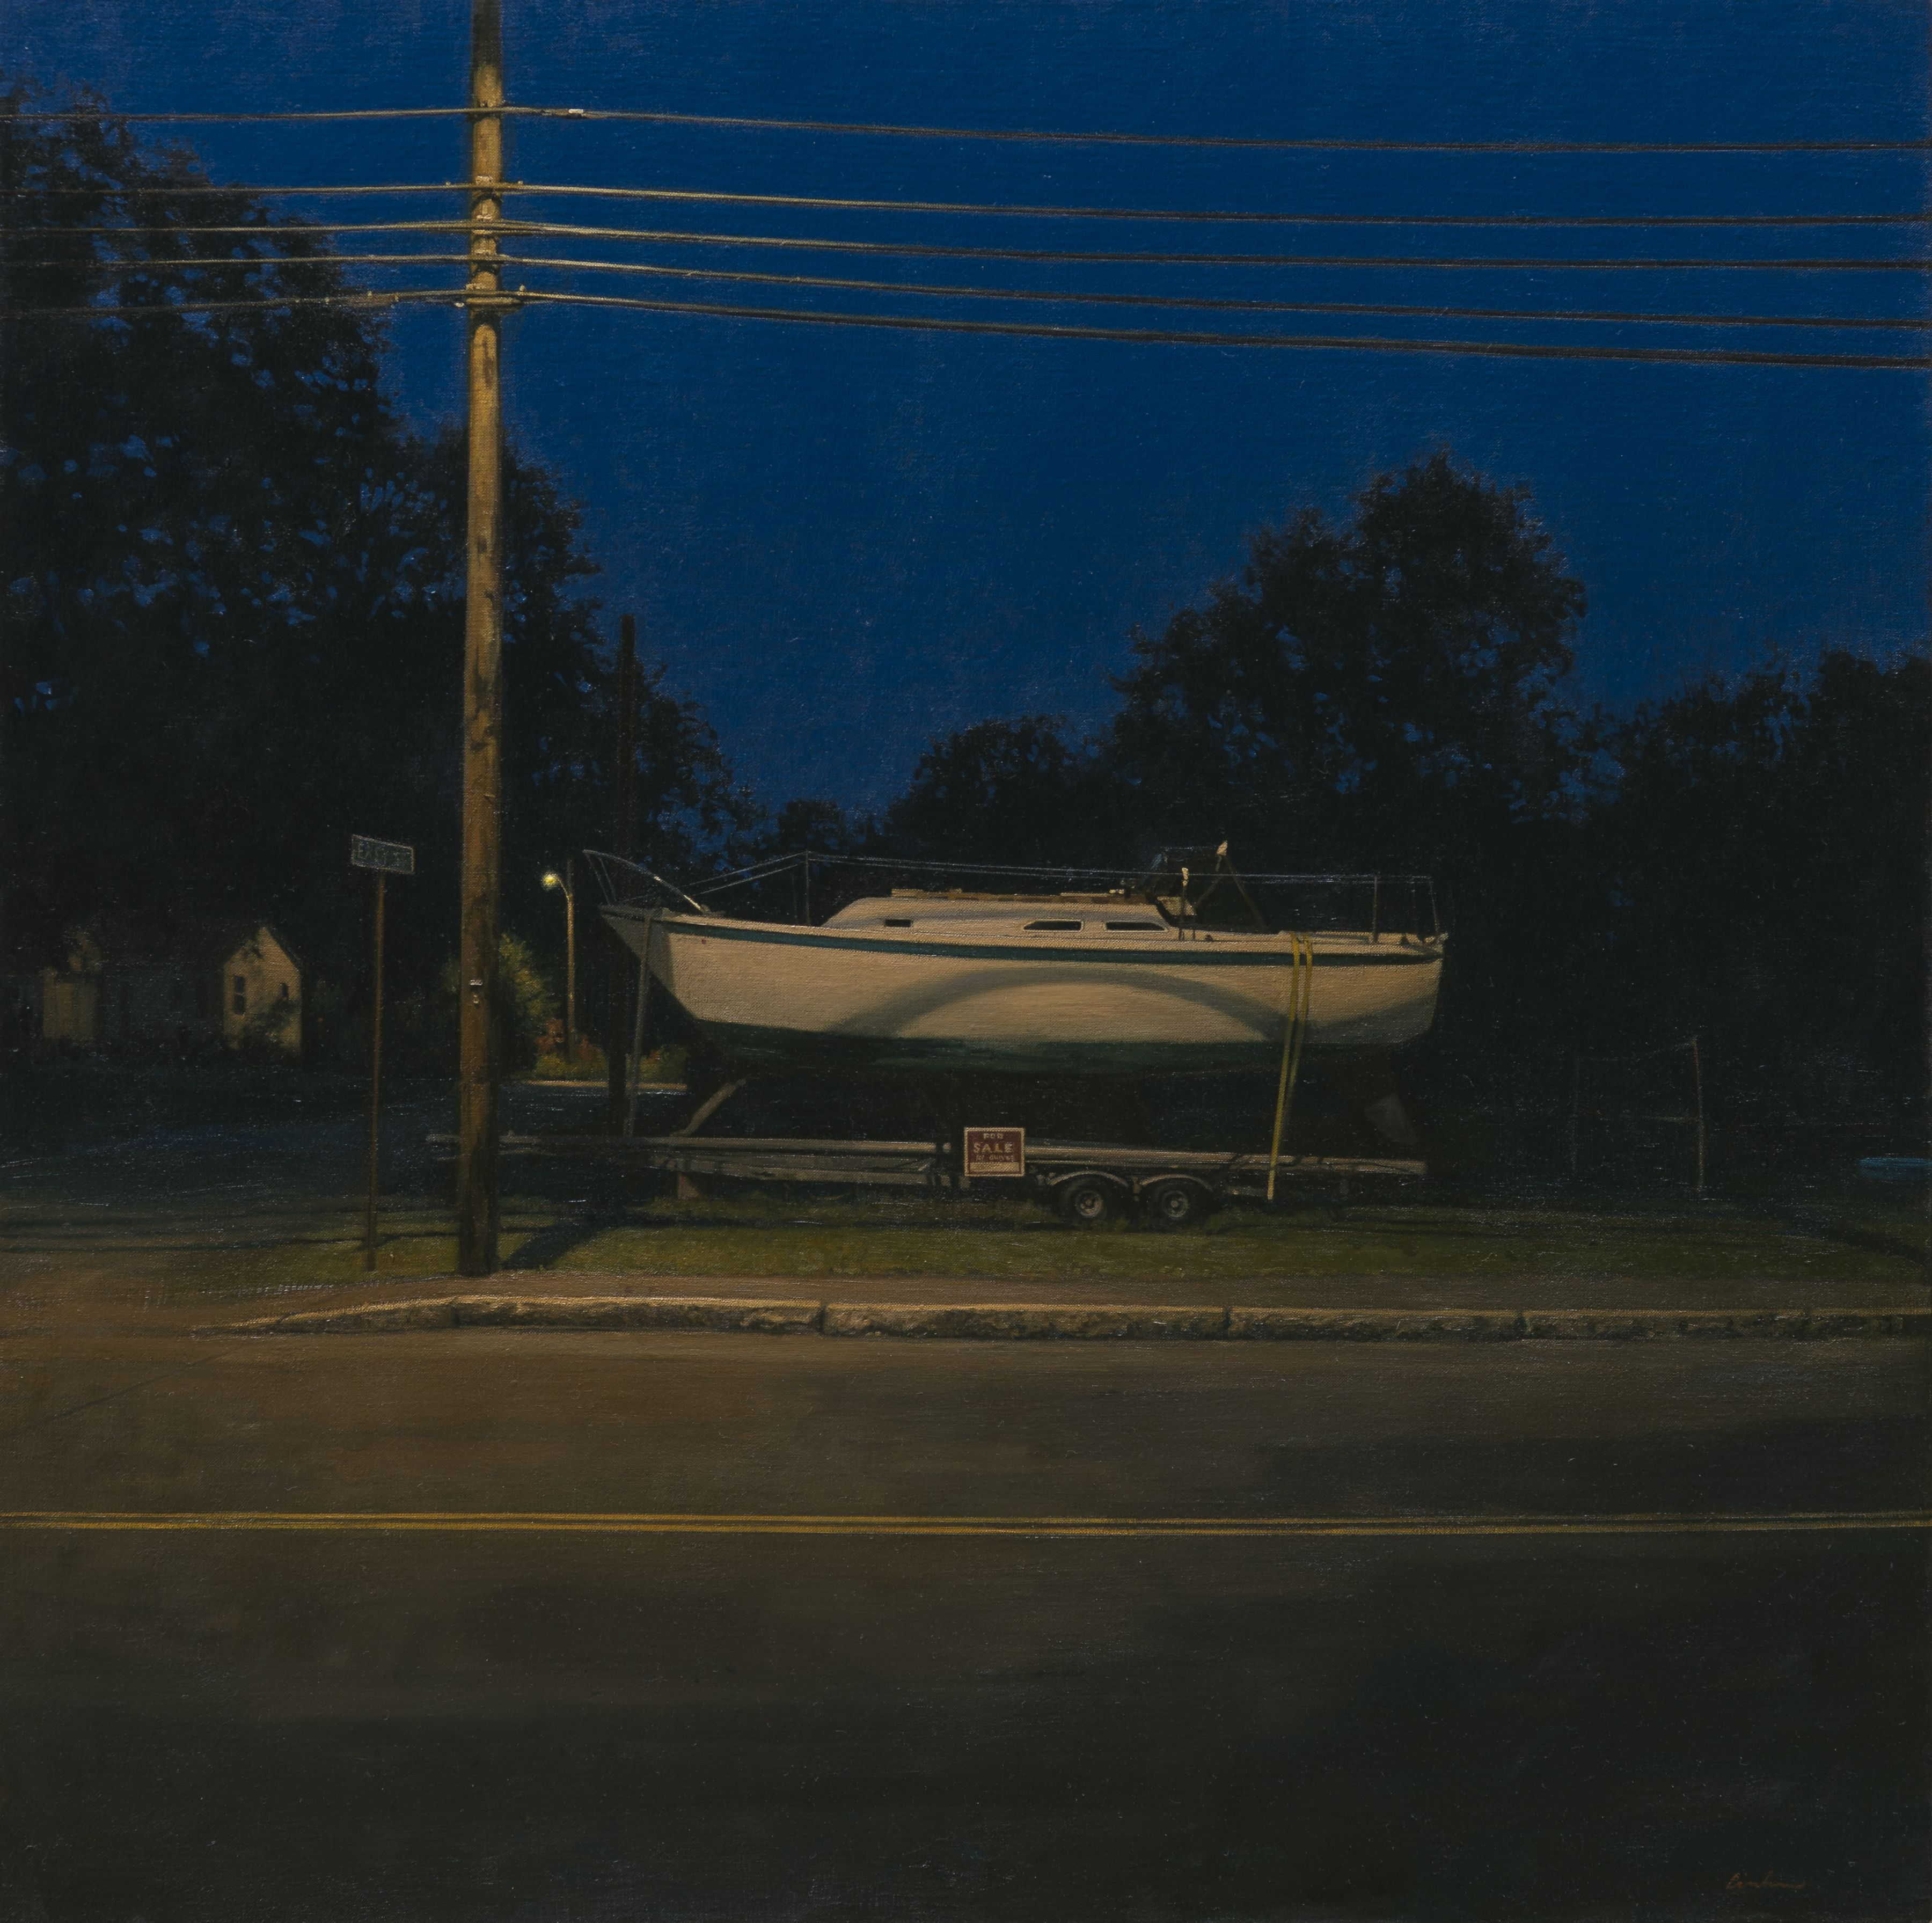 linden frederick, For Sale By Owner (SOLD), 2014, oil on linen, 34 x 34 inches